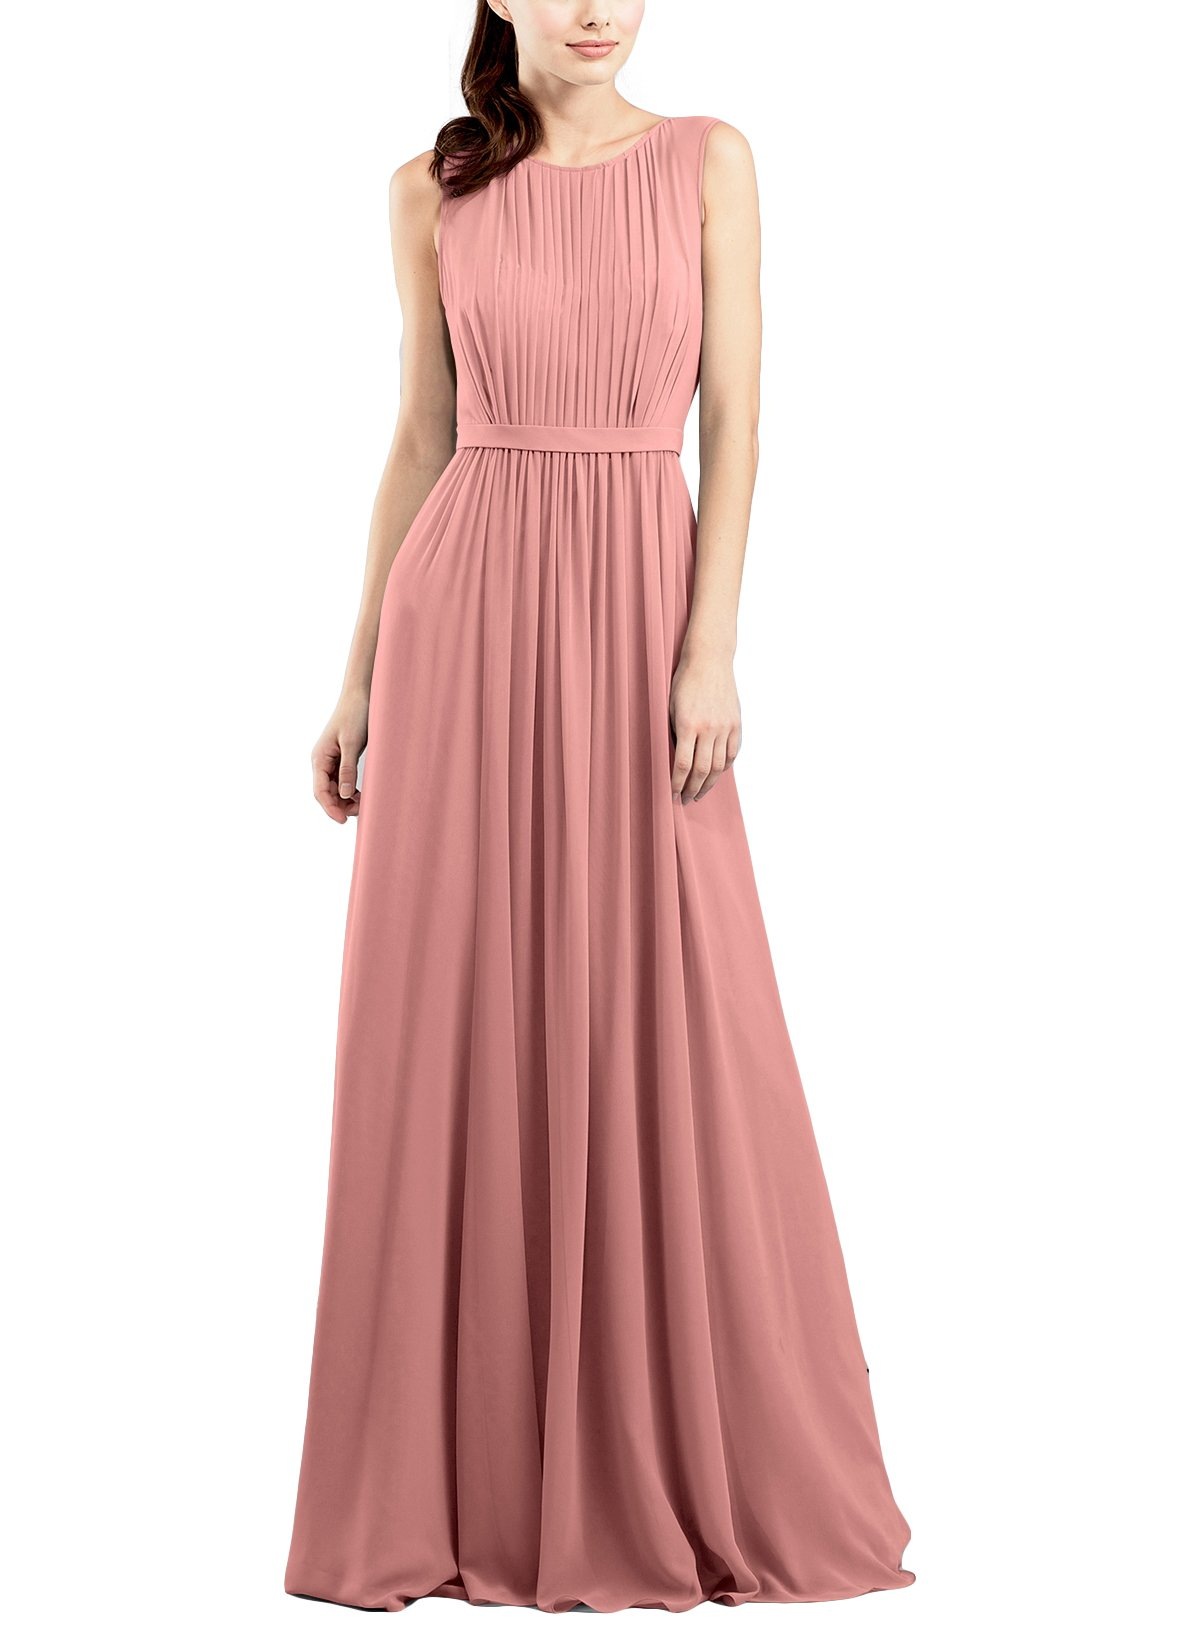 Jenny Yoo Vivienne Bridesmaid Dress Bridesmaid Dress | Brideside